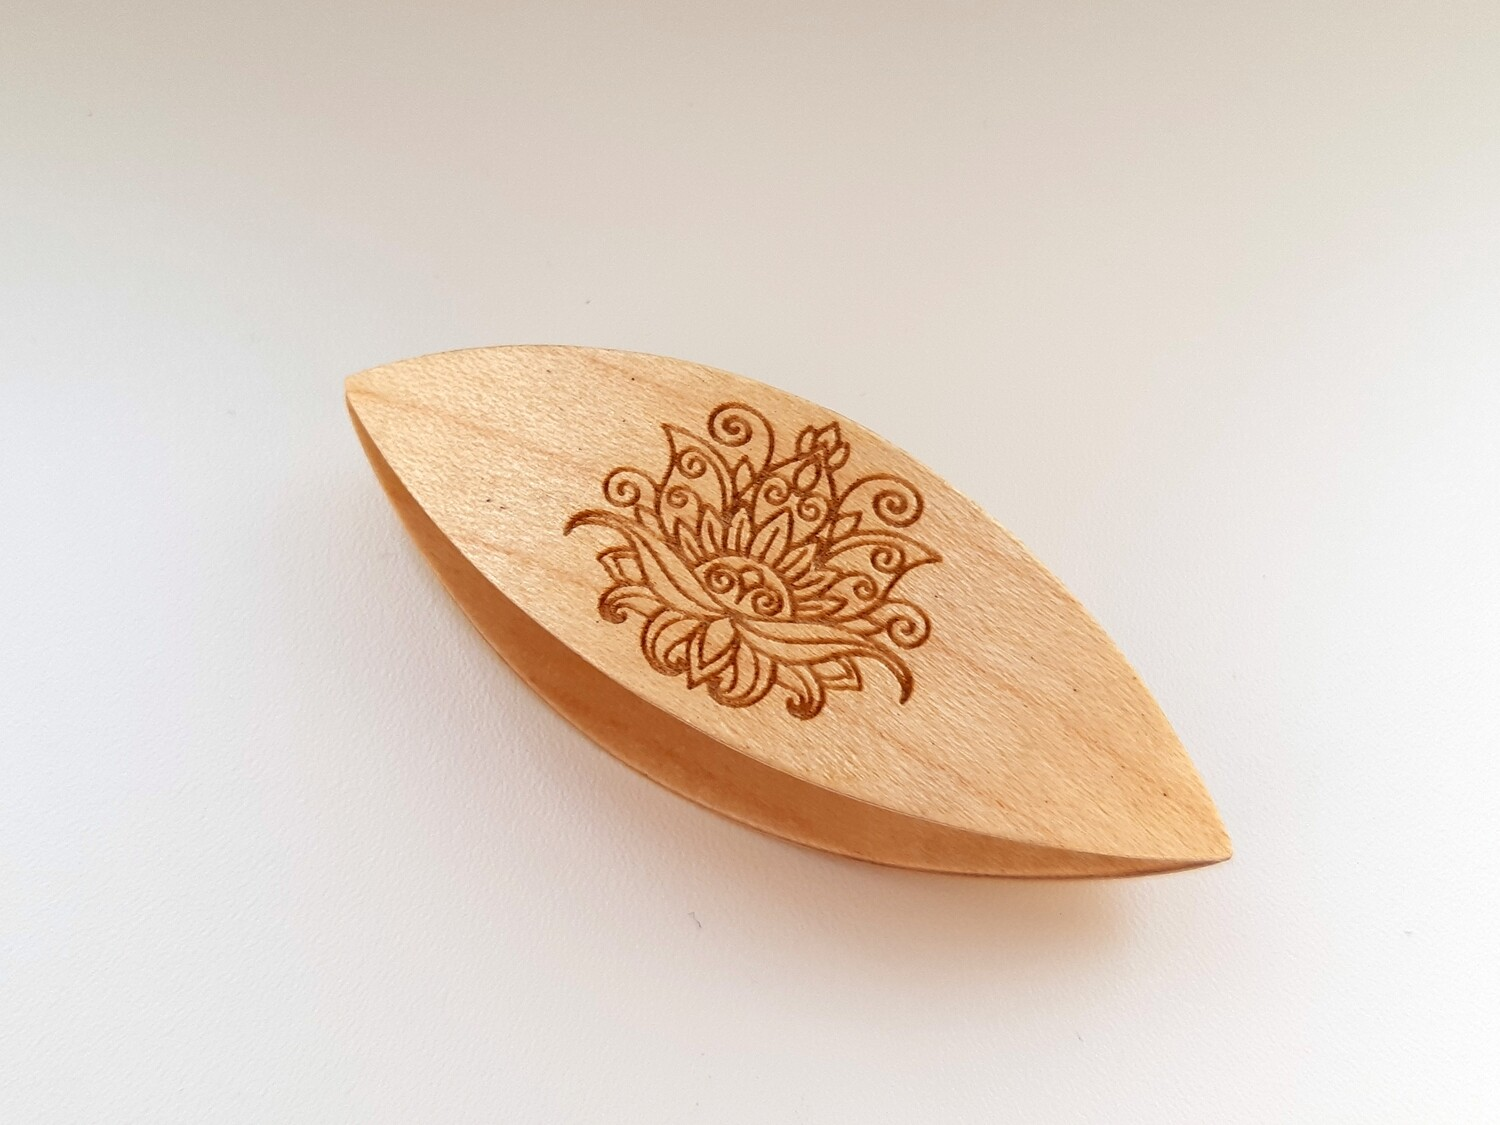 Tatting Shuttle Maple With Engraving #8